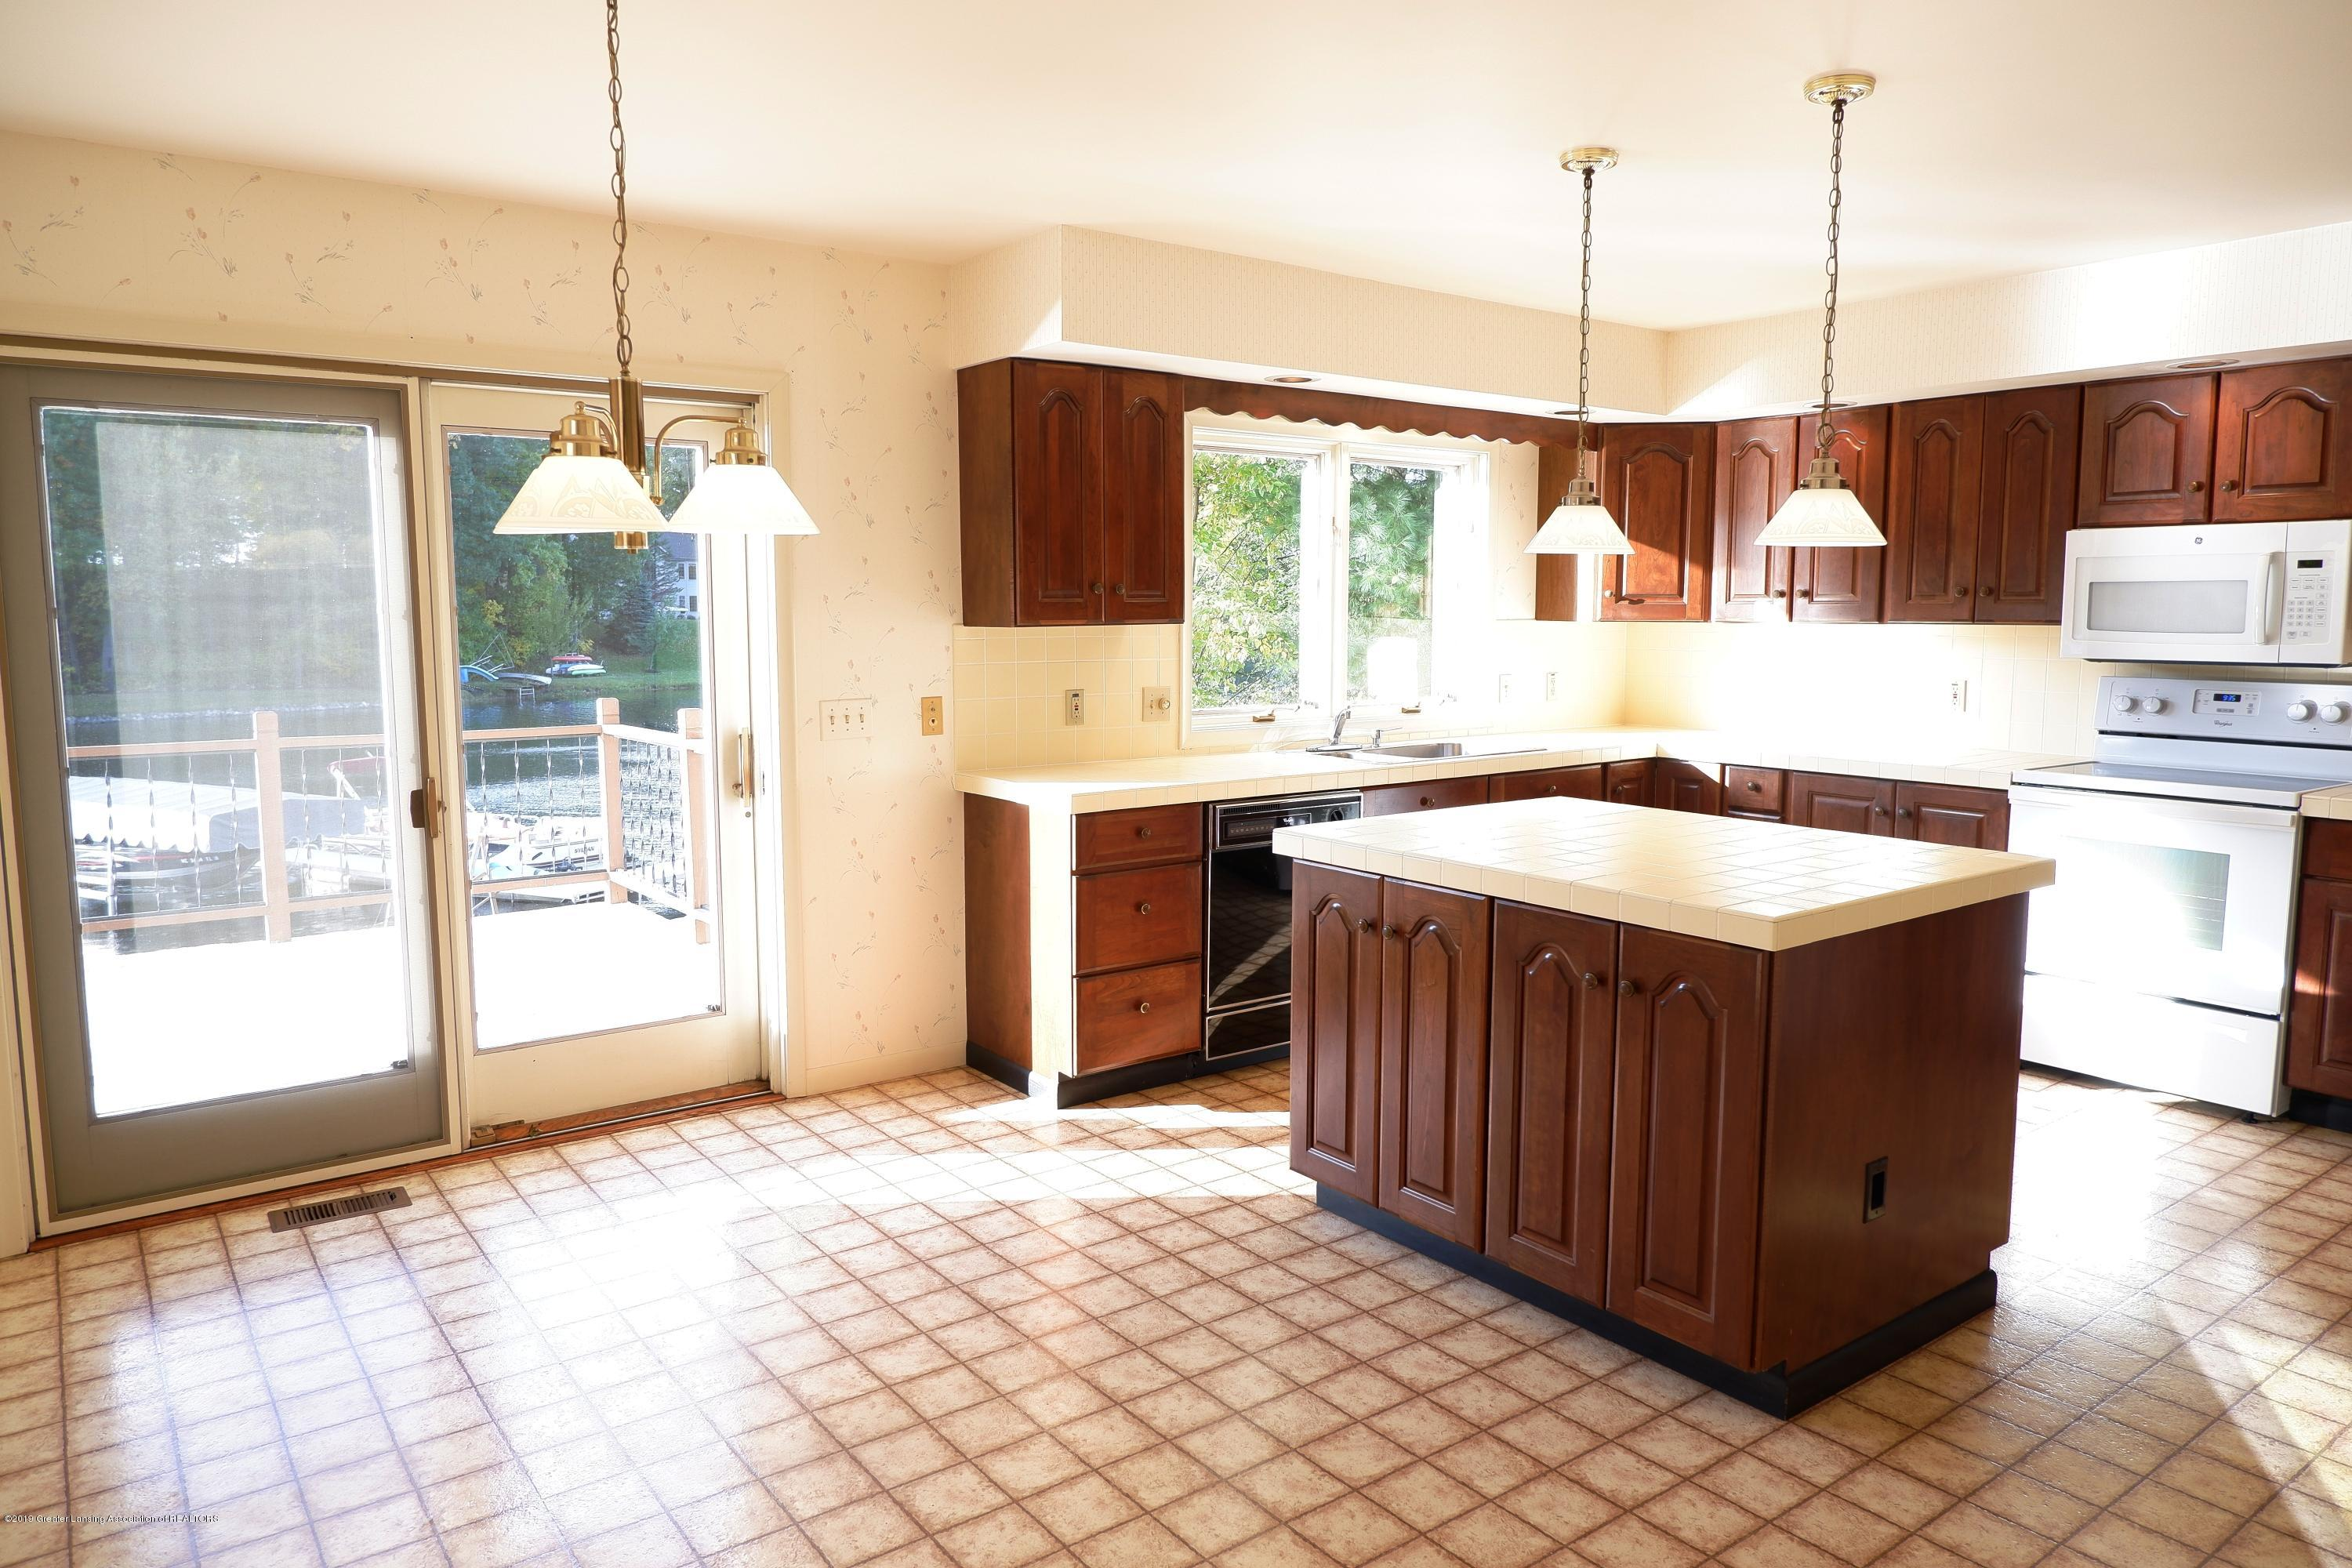 8933 W Scenic Lake Dr - Large, open kitchen - 16